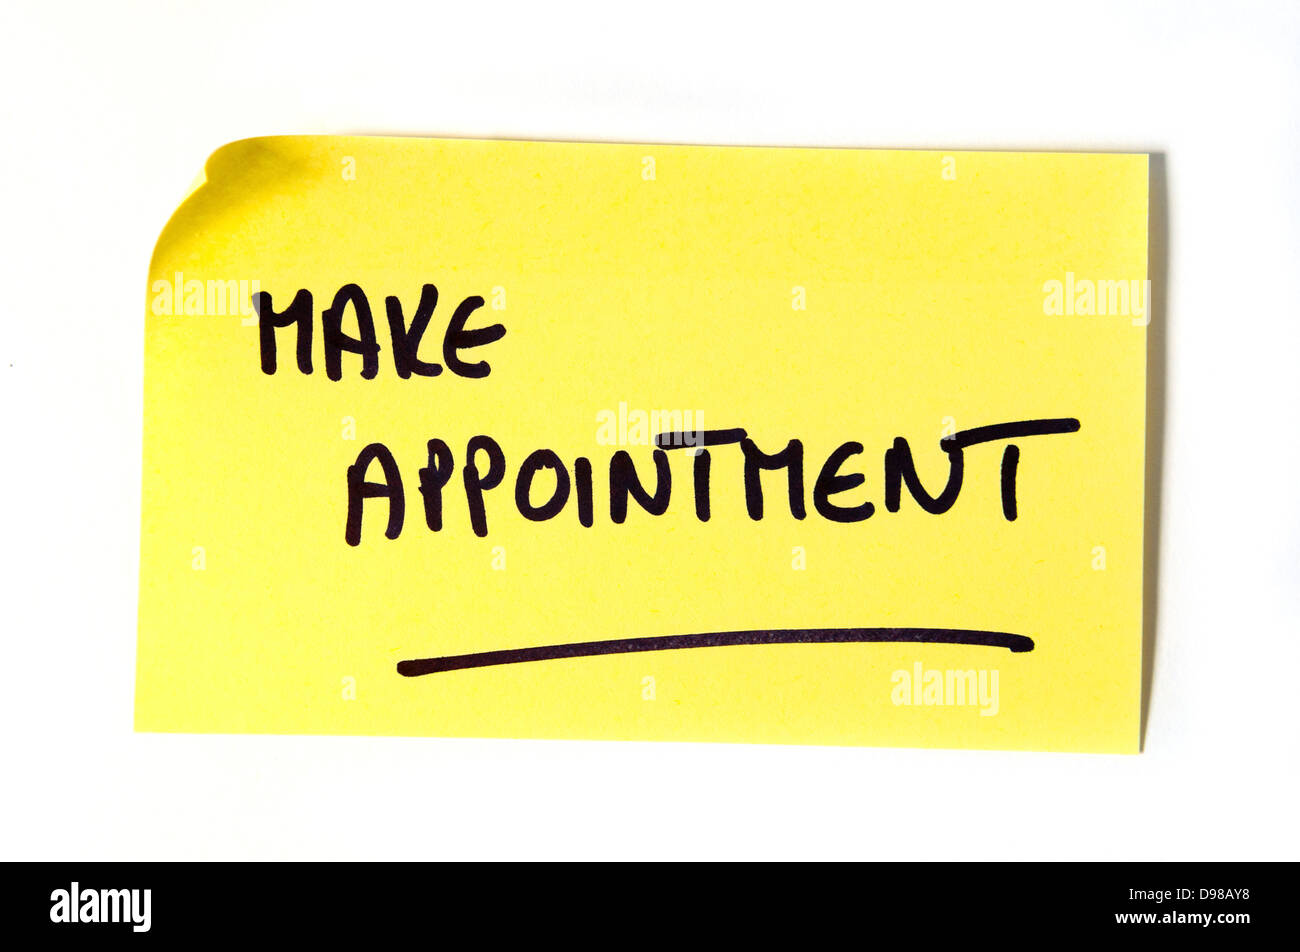 Make appointment written in capital letters on a yellow post-it note - Stock Image